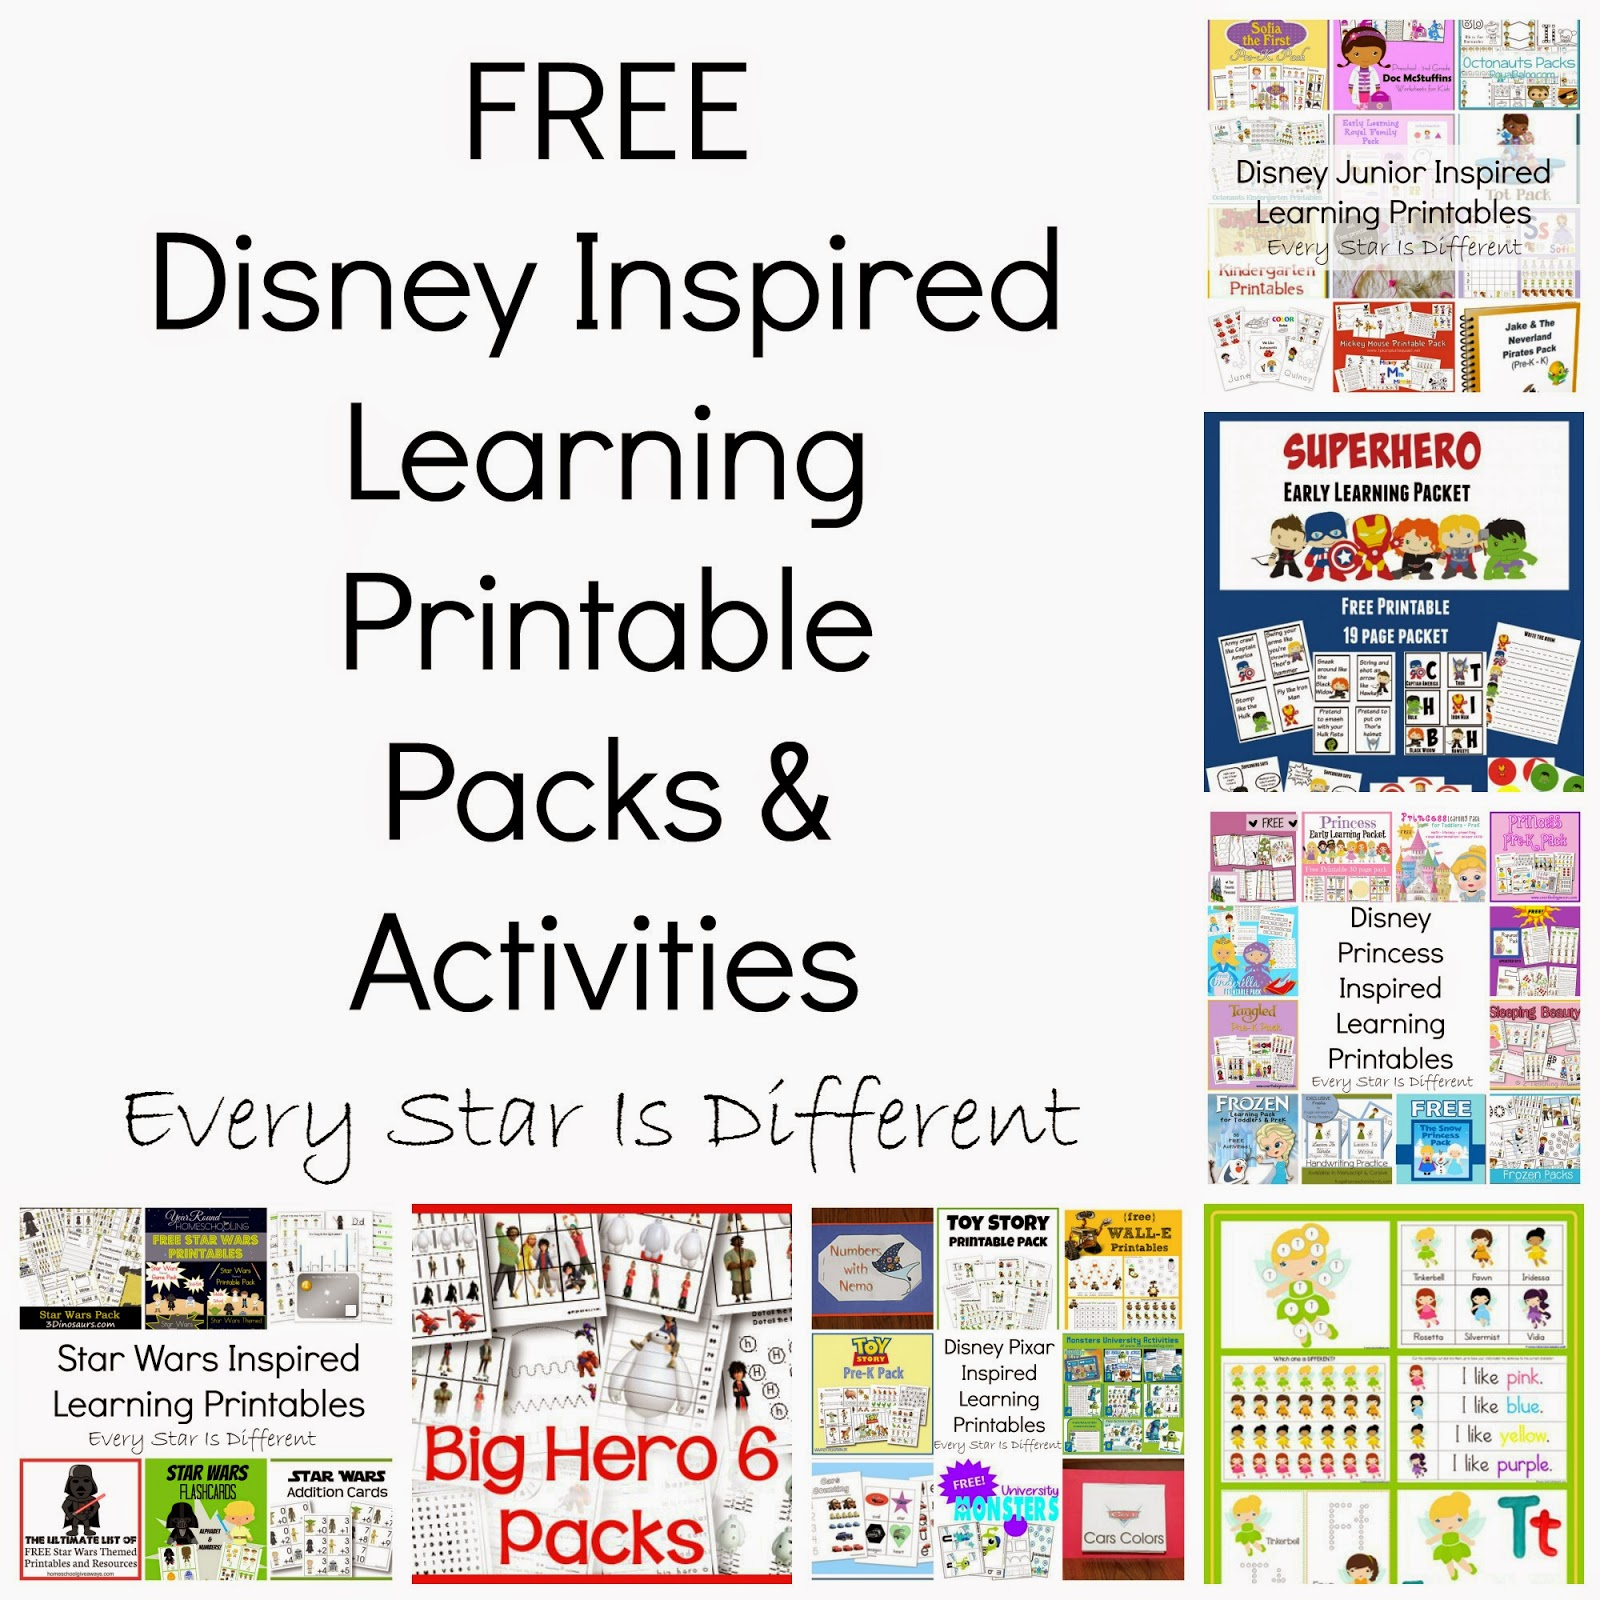 Free Worksheet Disney Worksheets free disney inspired learning printable packs activities every this is by no means a complete list i promise if youre in search of frozen or star wars printables you can spend an entire day